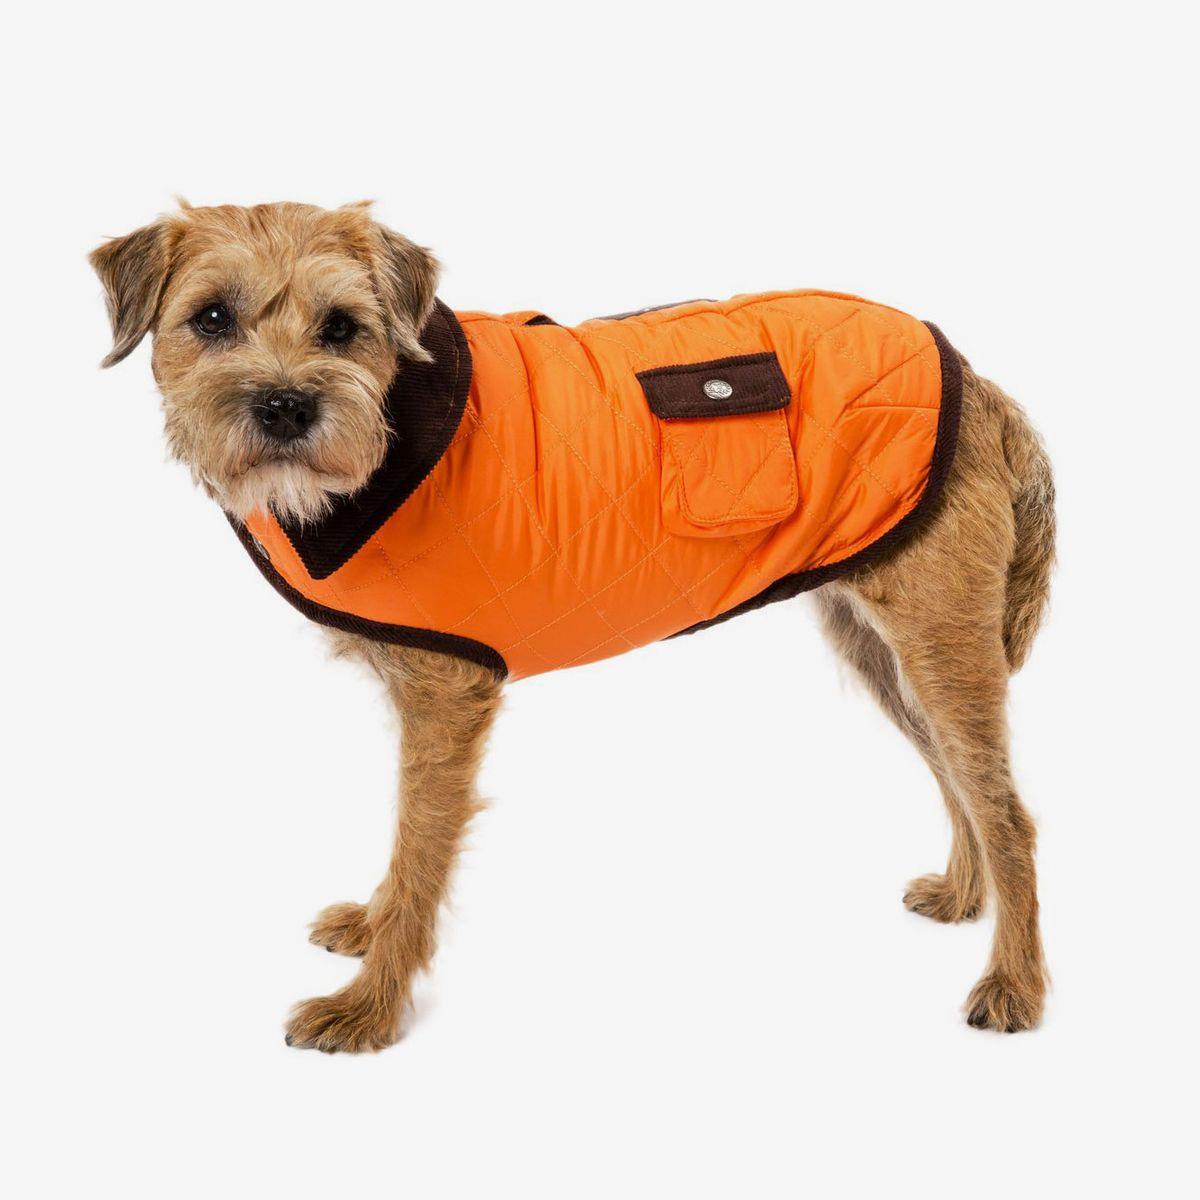 dog shirt gifts for dog lovers pet gift shirts for dogs pet apparel dog stuff pup power clothing for dogs dog clothing dog apparel